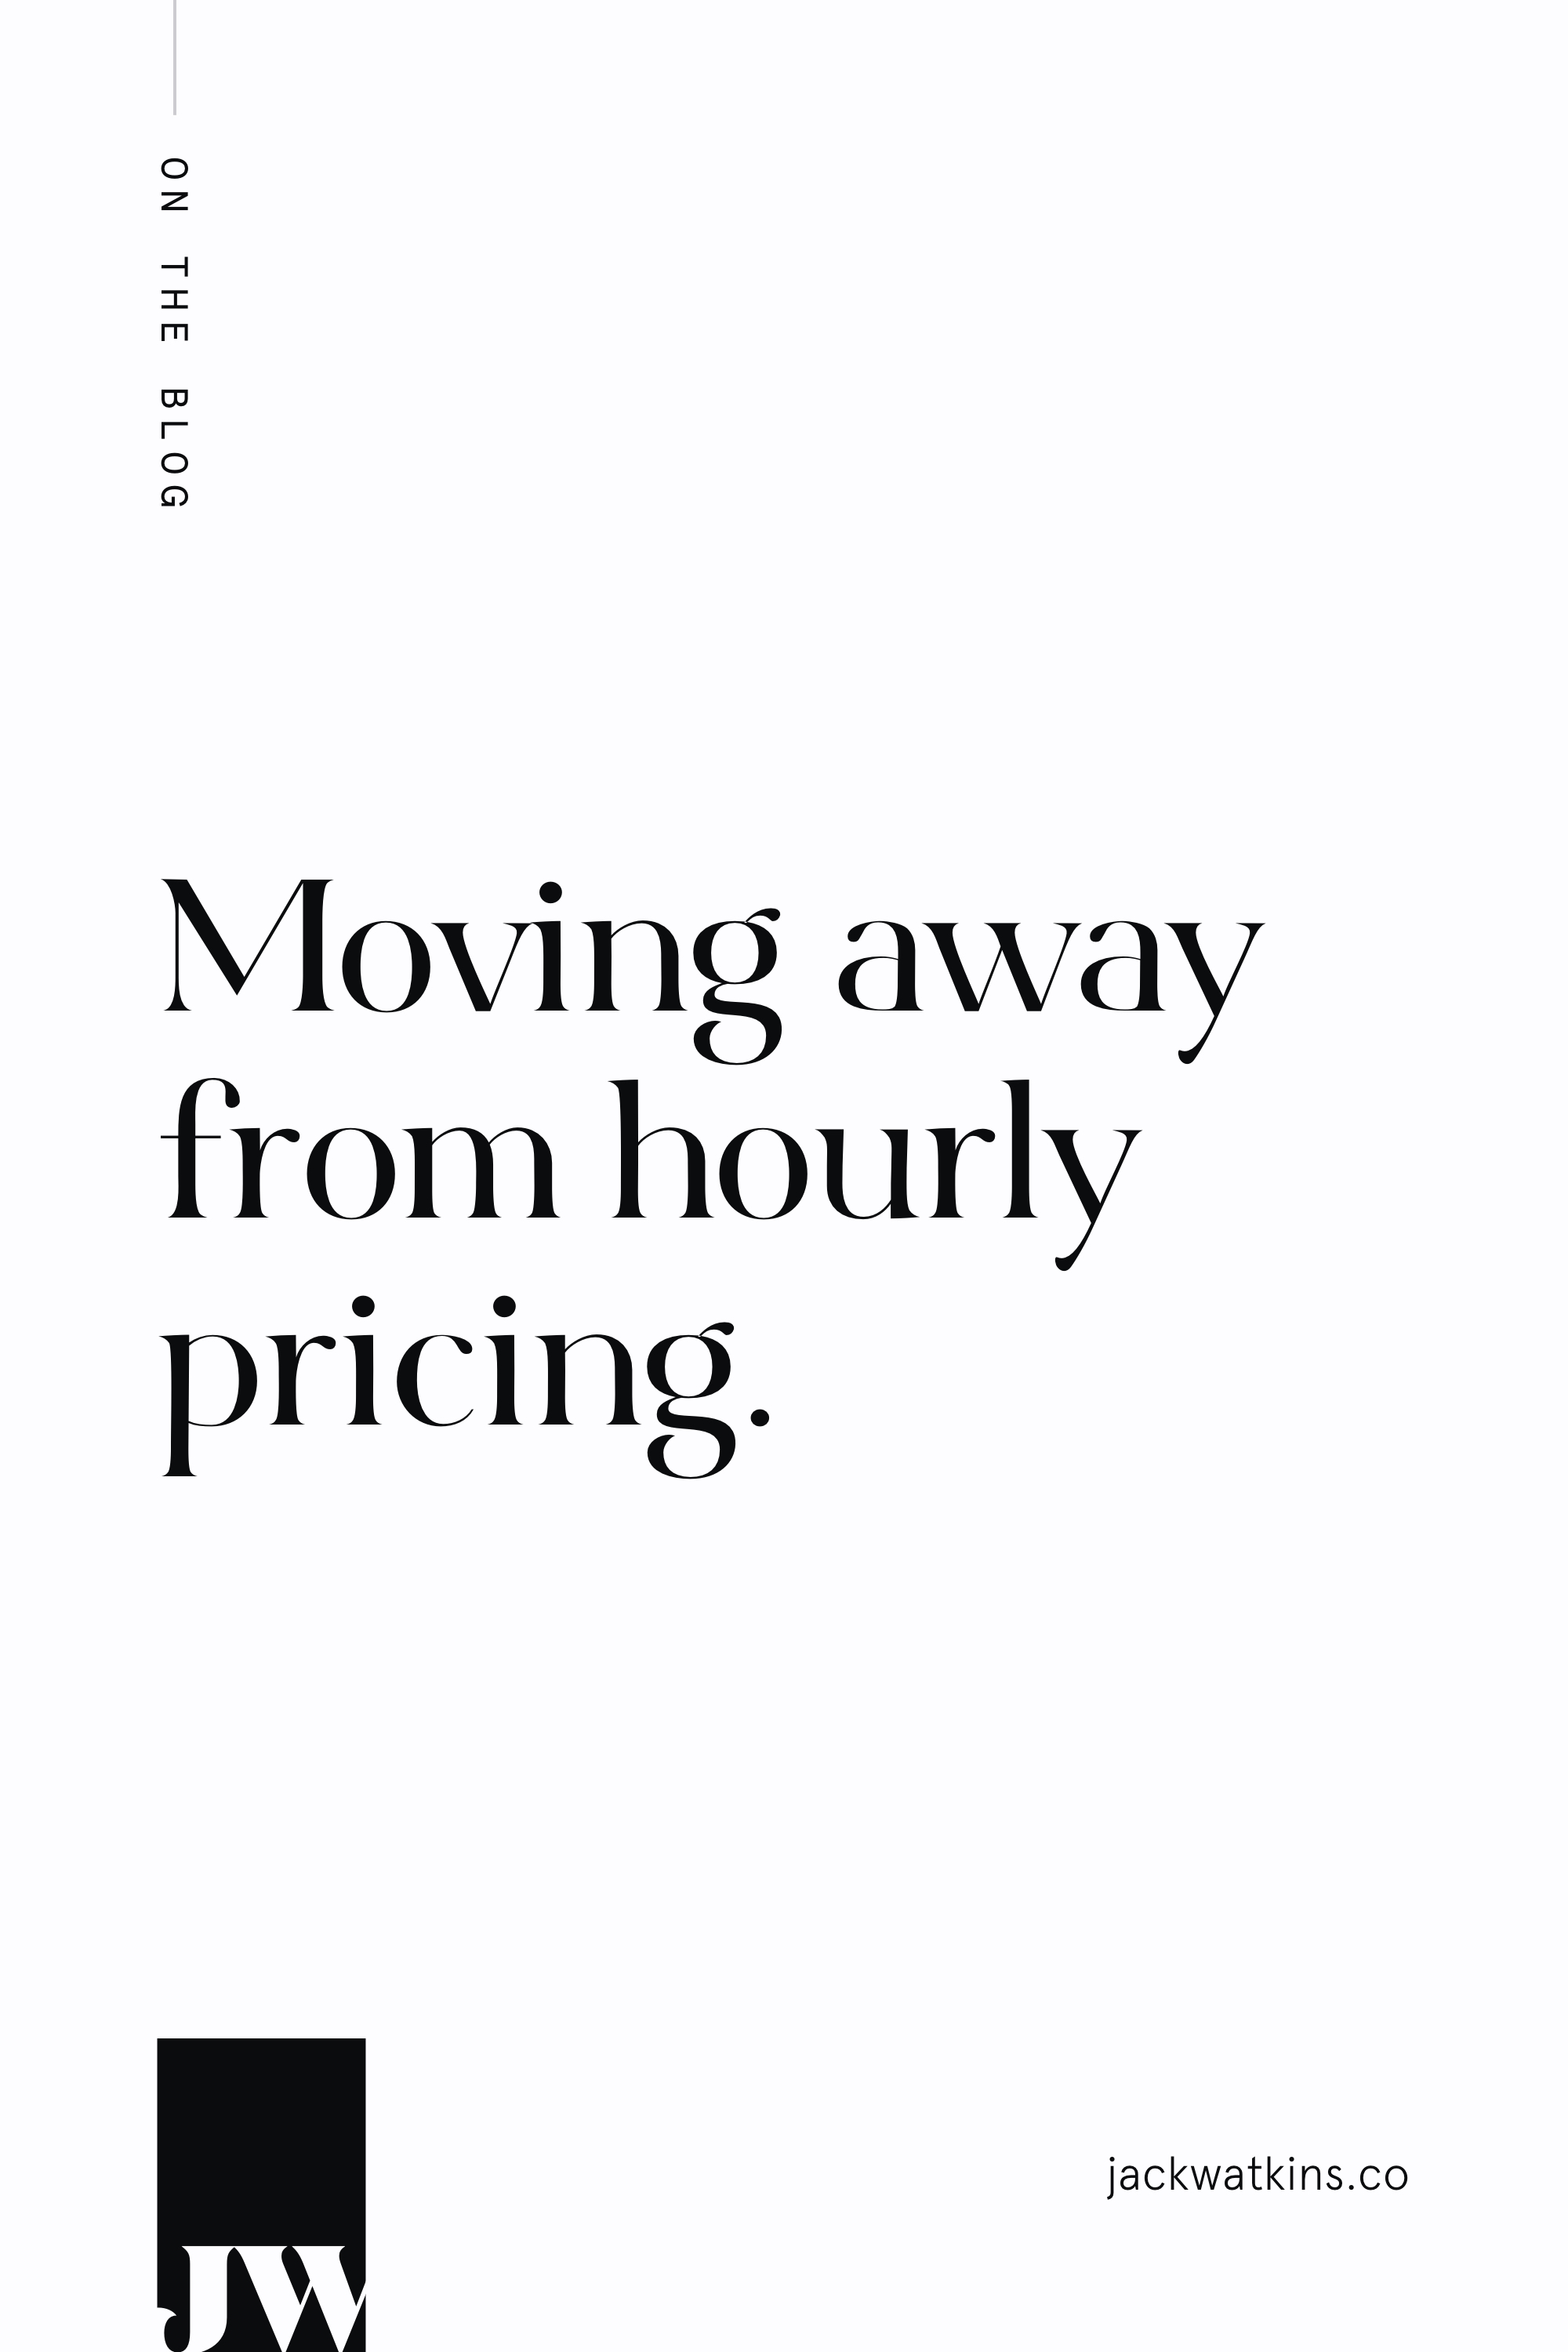 Moving away from hourly pricing.